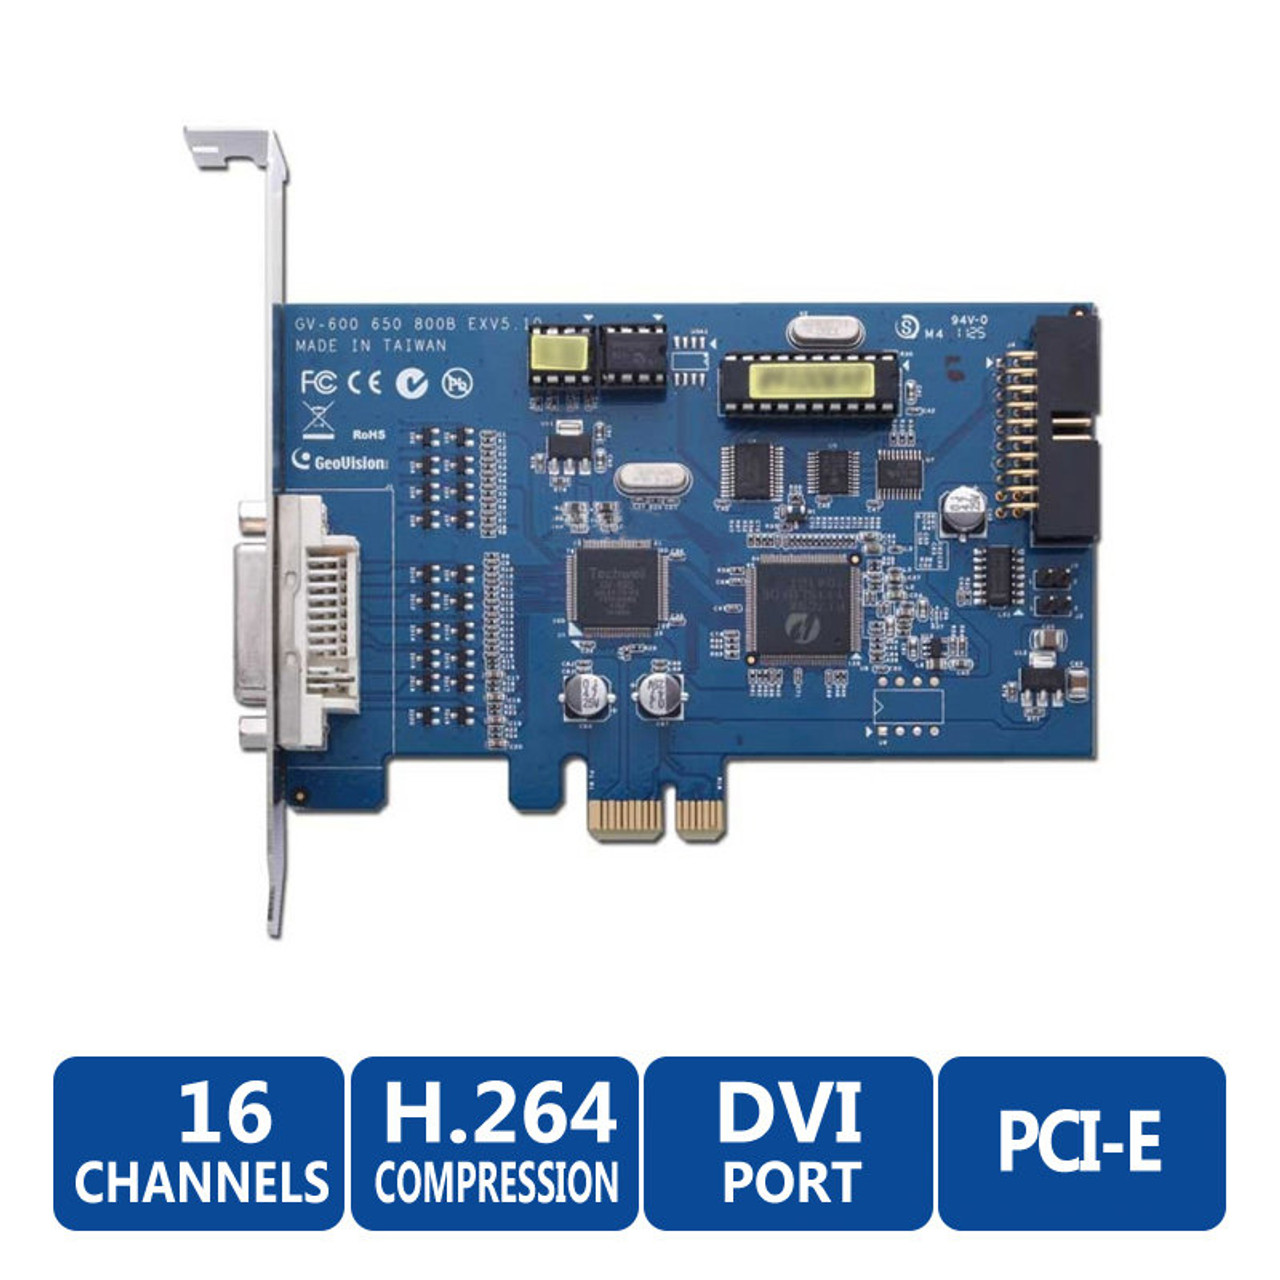 GV-800 VIDEO CAPTURE CARD DRIVER DOWNLOAD FREE